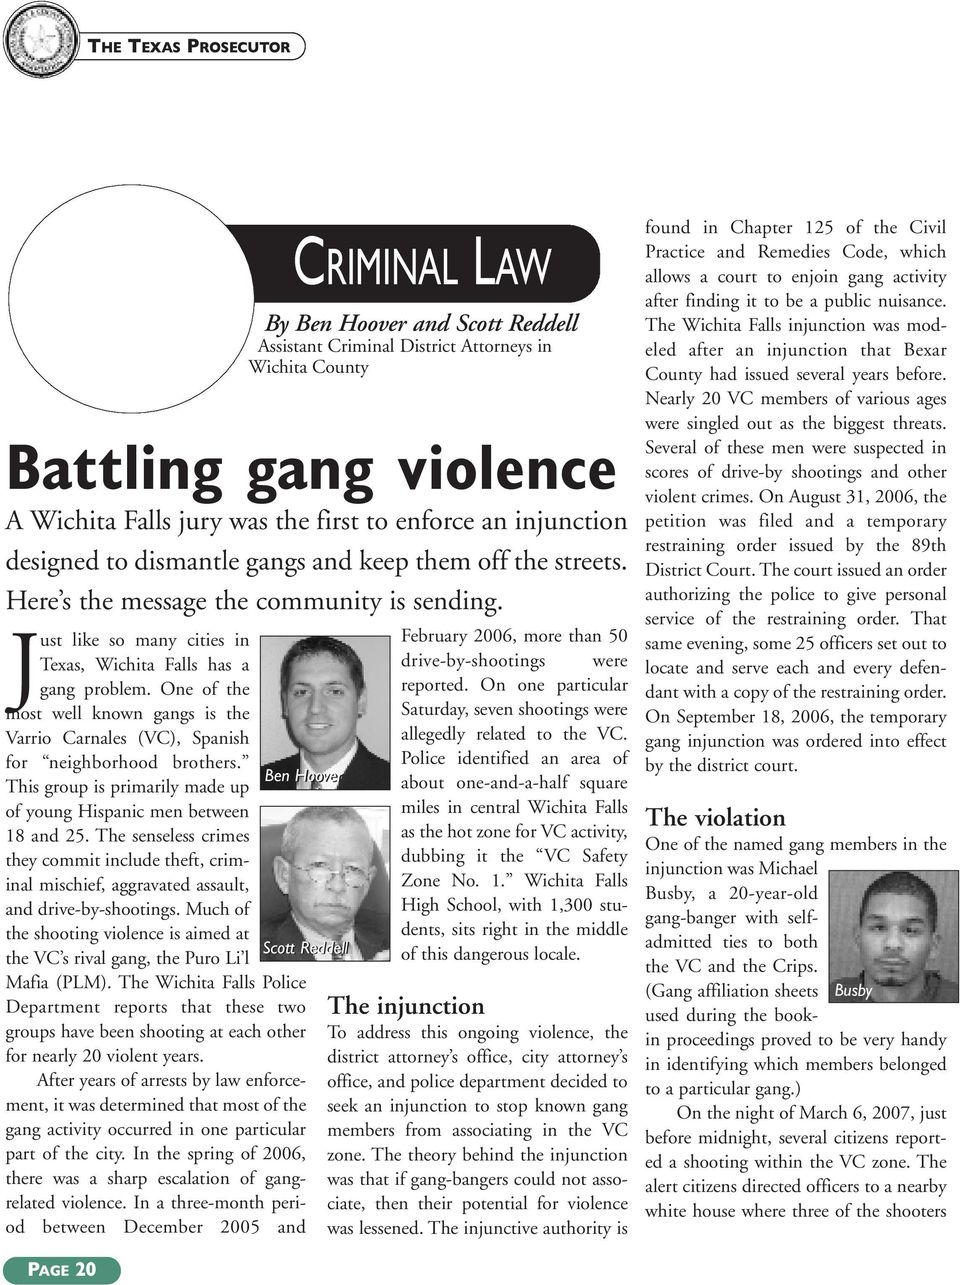 Much of the shooting violence is aimed at the VC s rival gang, the Puro Li l Mafia (PLM).